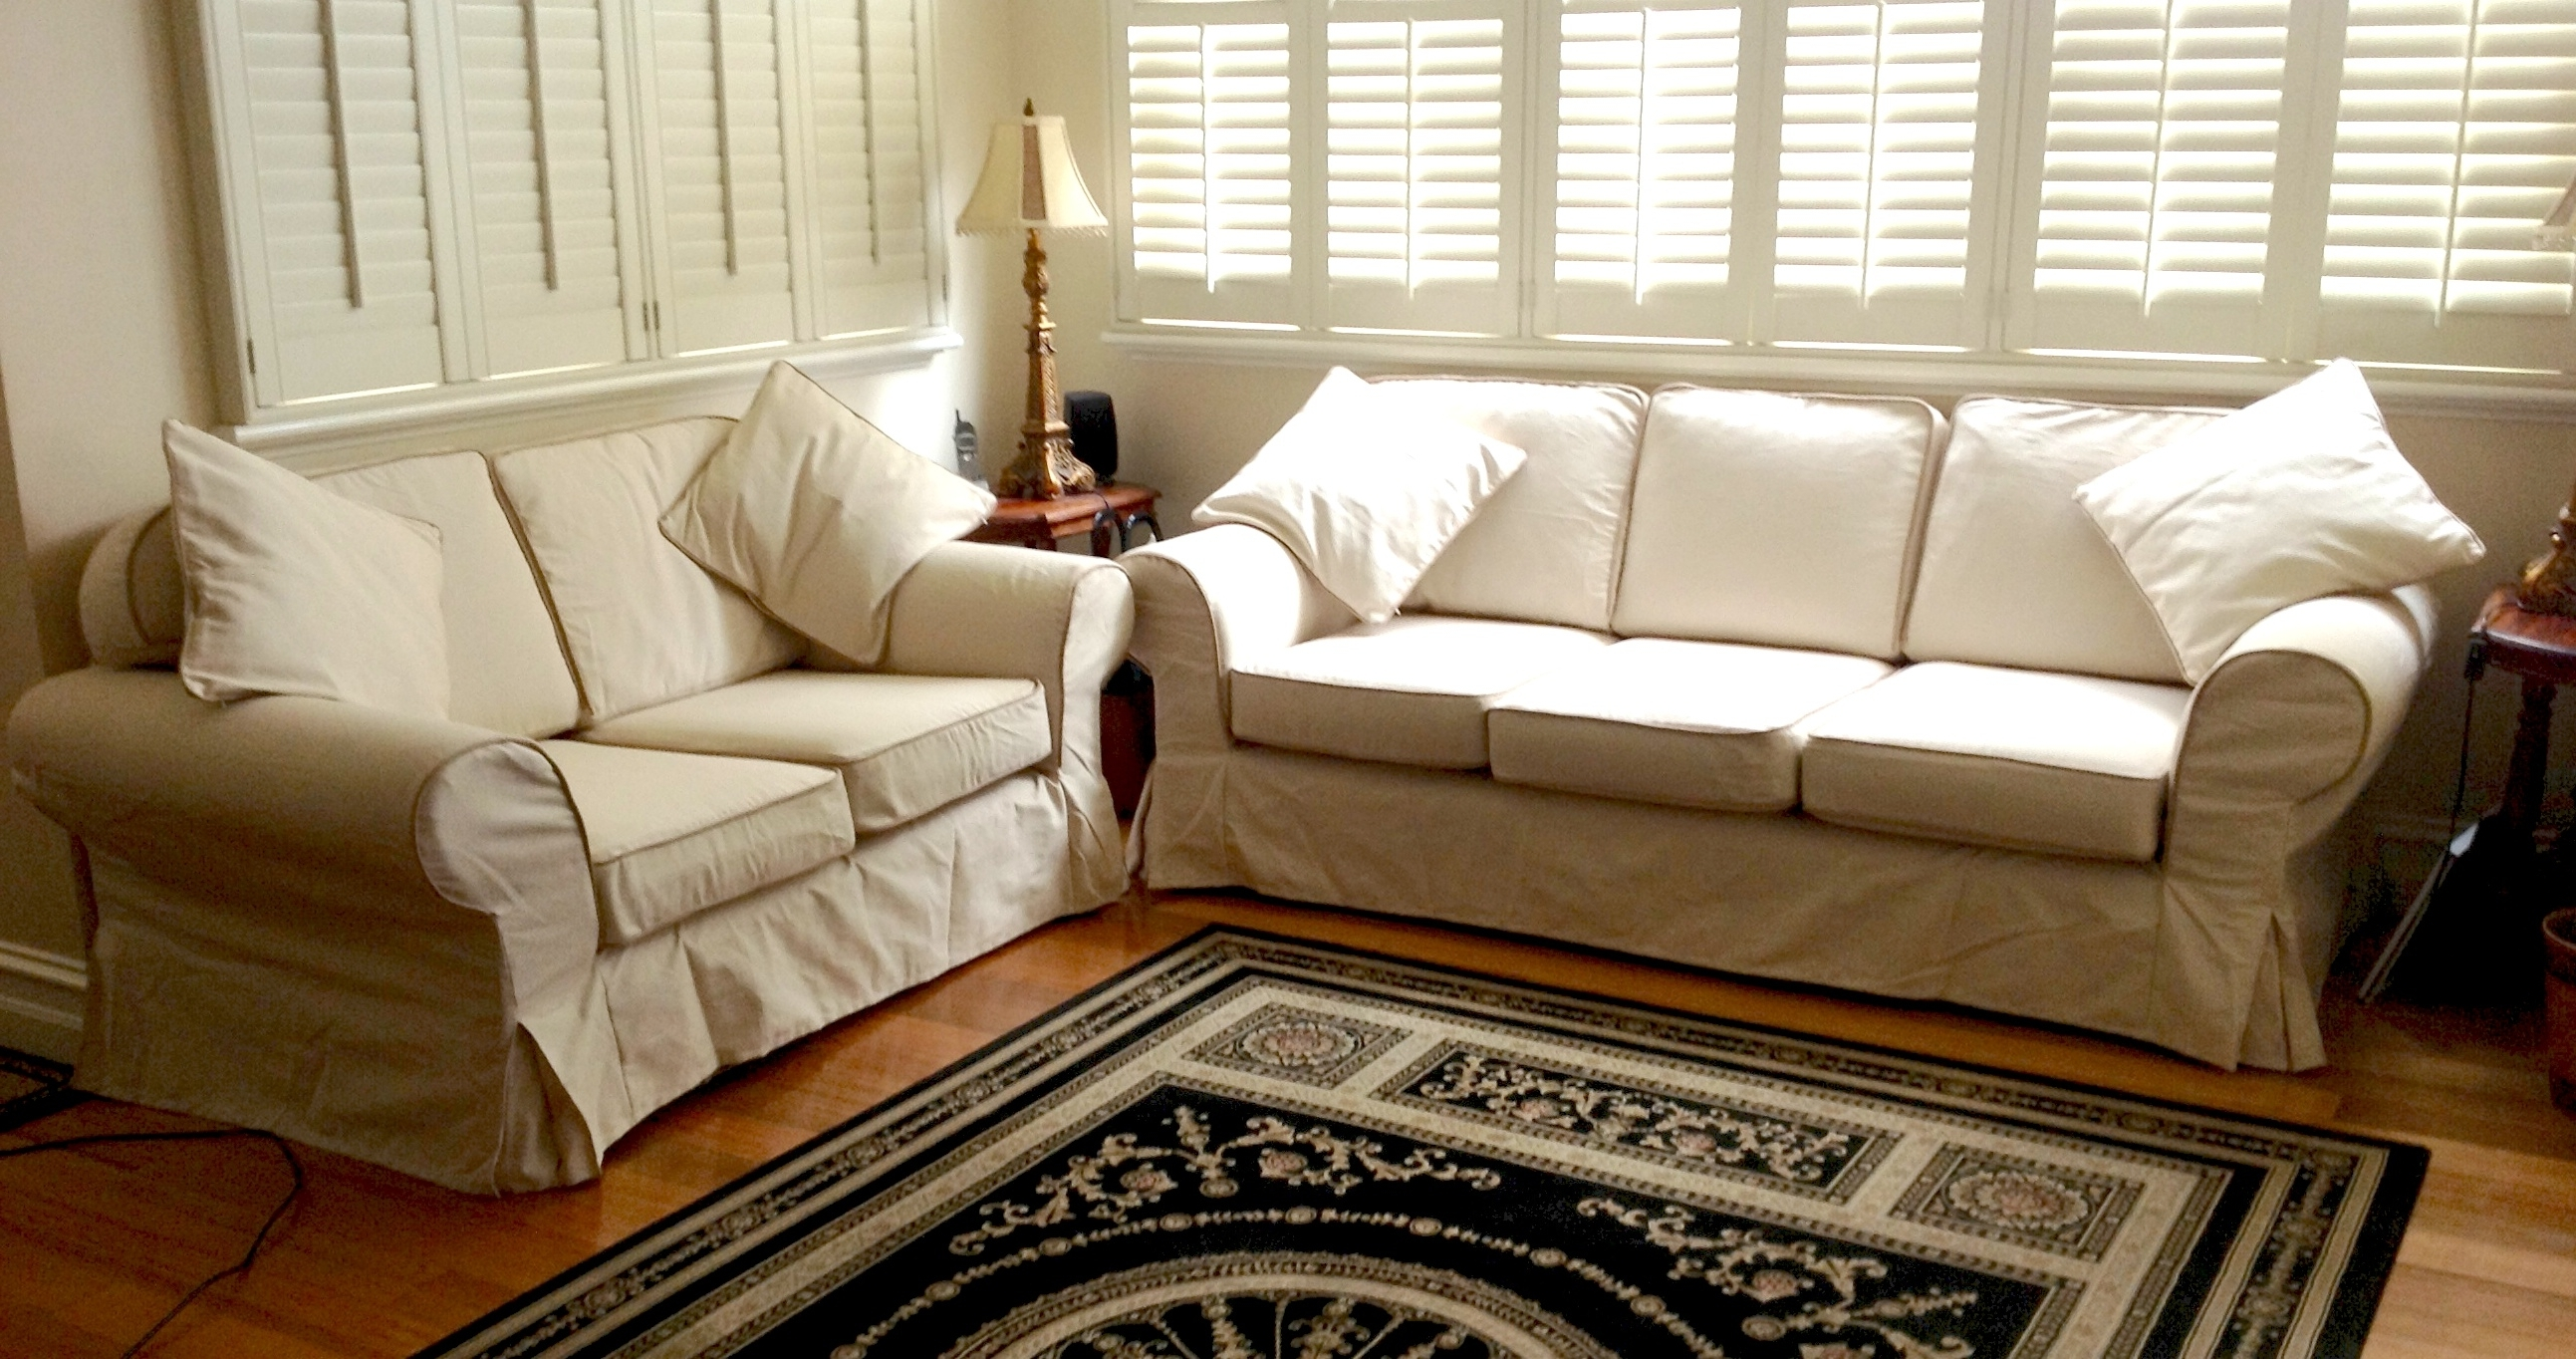 Slipcovers Sofas With Widely Used Slipcovers And Couch Cover For Any Sofa Online (View 11 of 15)